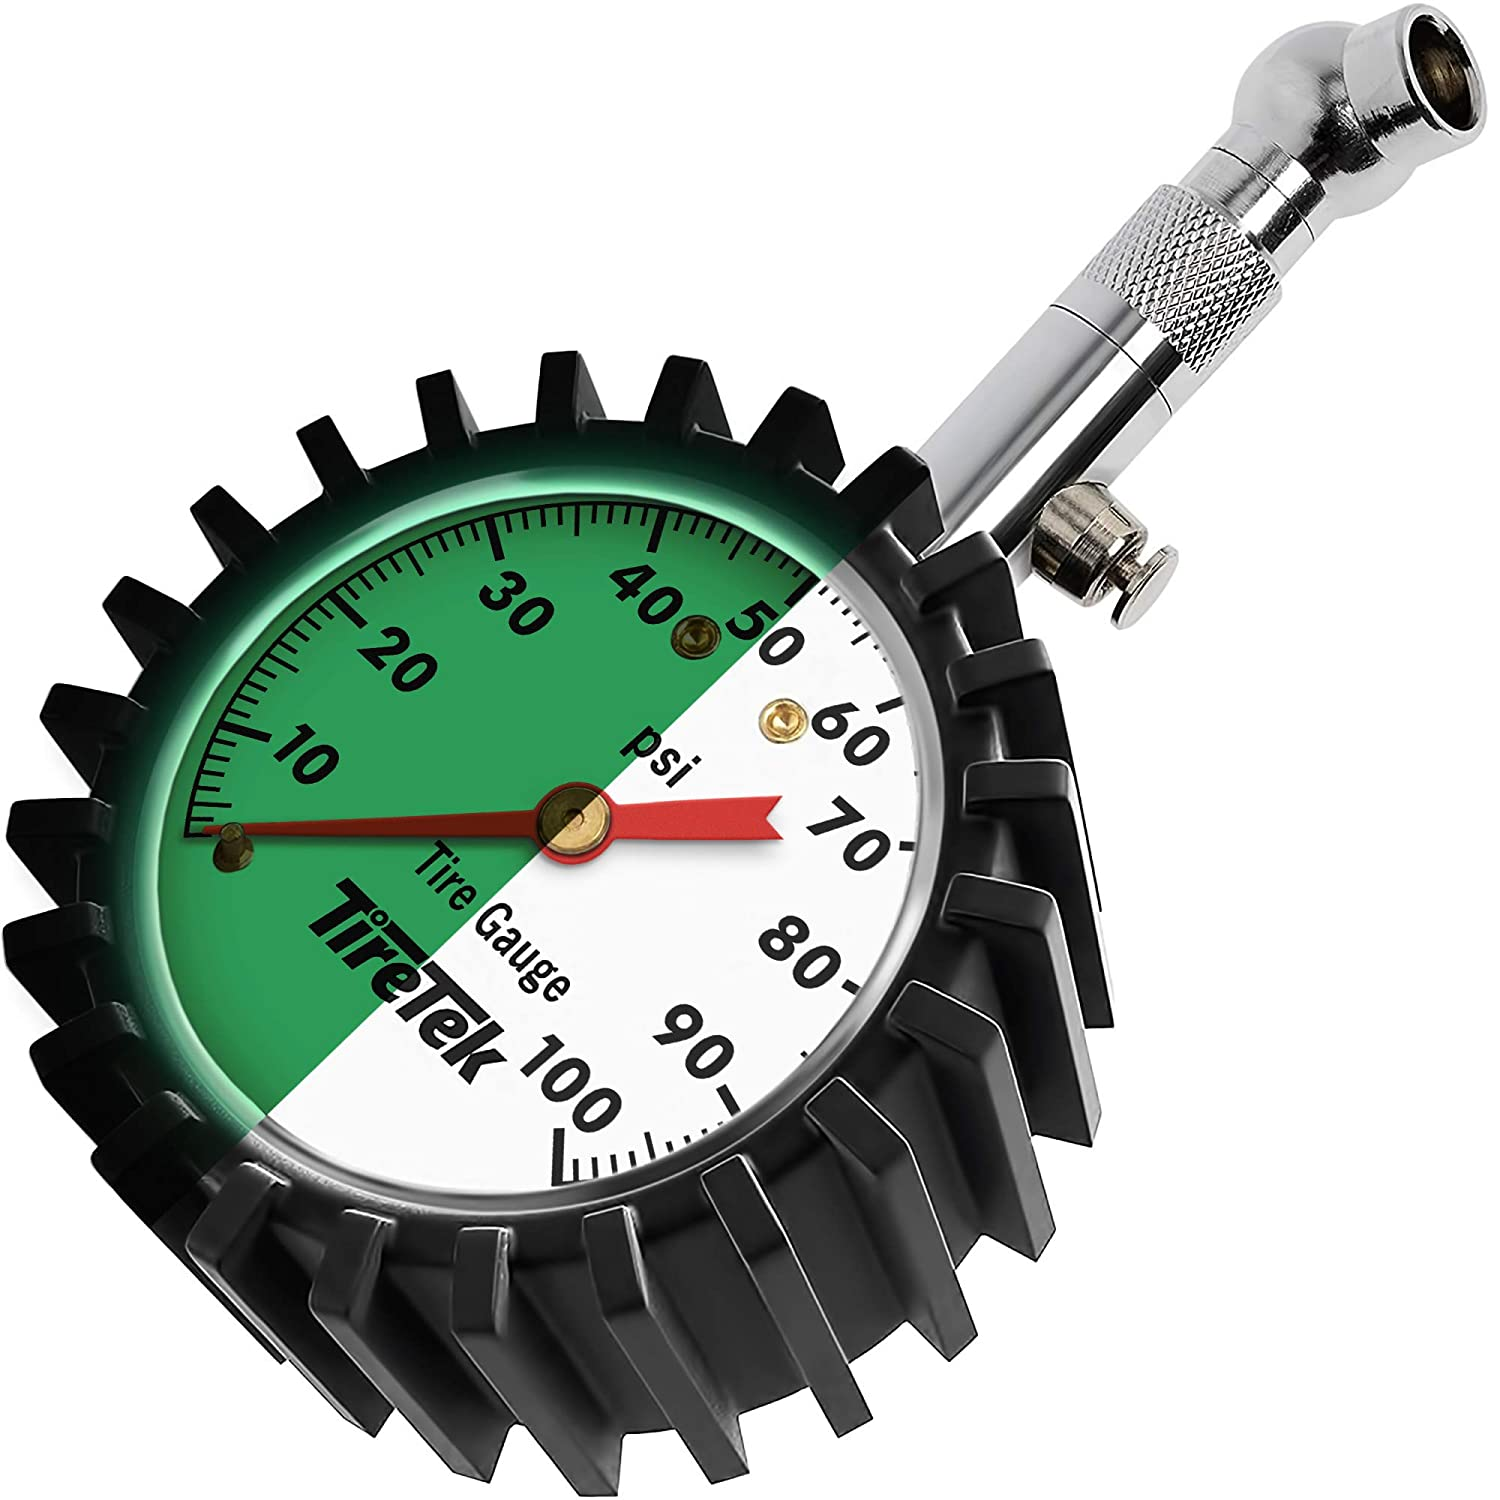 TireTek Tire Gauge 0-100 PSI, ANSI Certified High Pressure Tire Gauge with Easy to Read Glow Dial, Heavy Duty Tire & Wheel Tools for Trucks, SUVs, RVs, Trailers, Pick Ups, Motorcycles & Cars